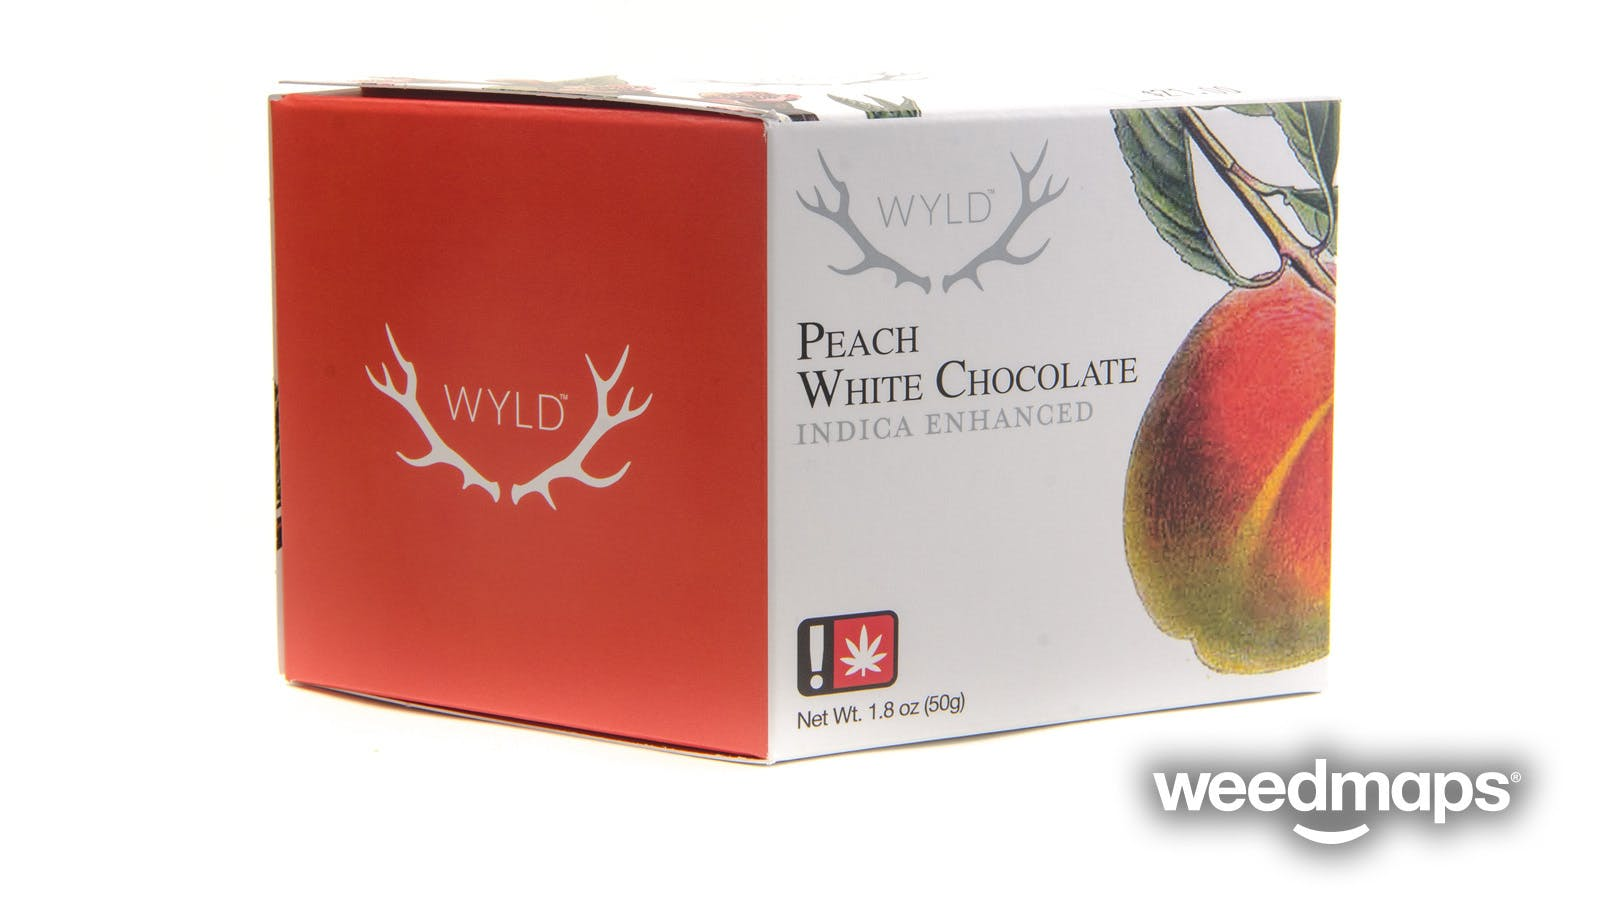 edible-wyld-peach-white-chocolate-indica-2c-10pk